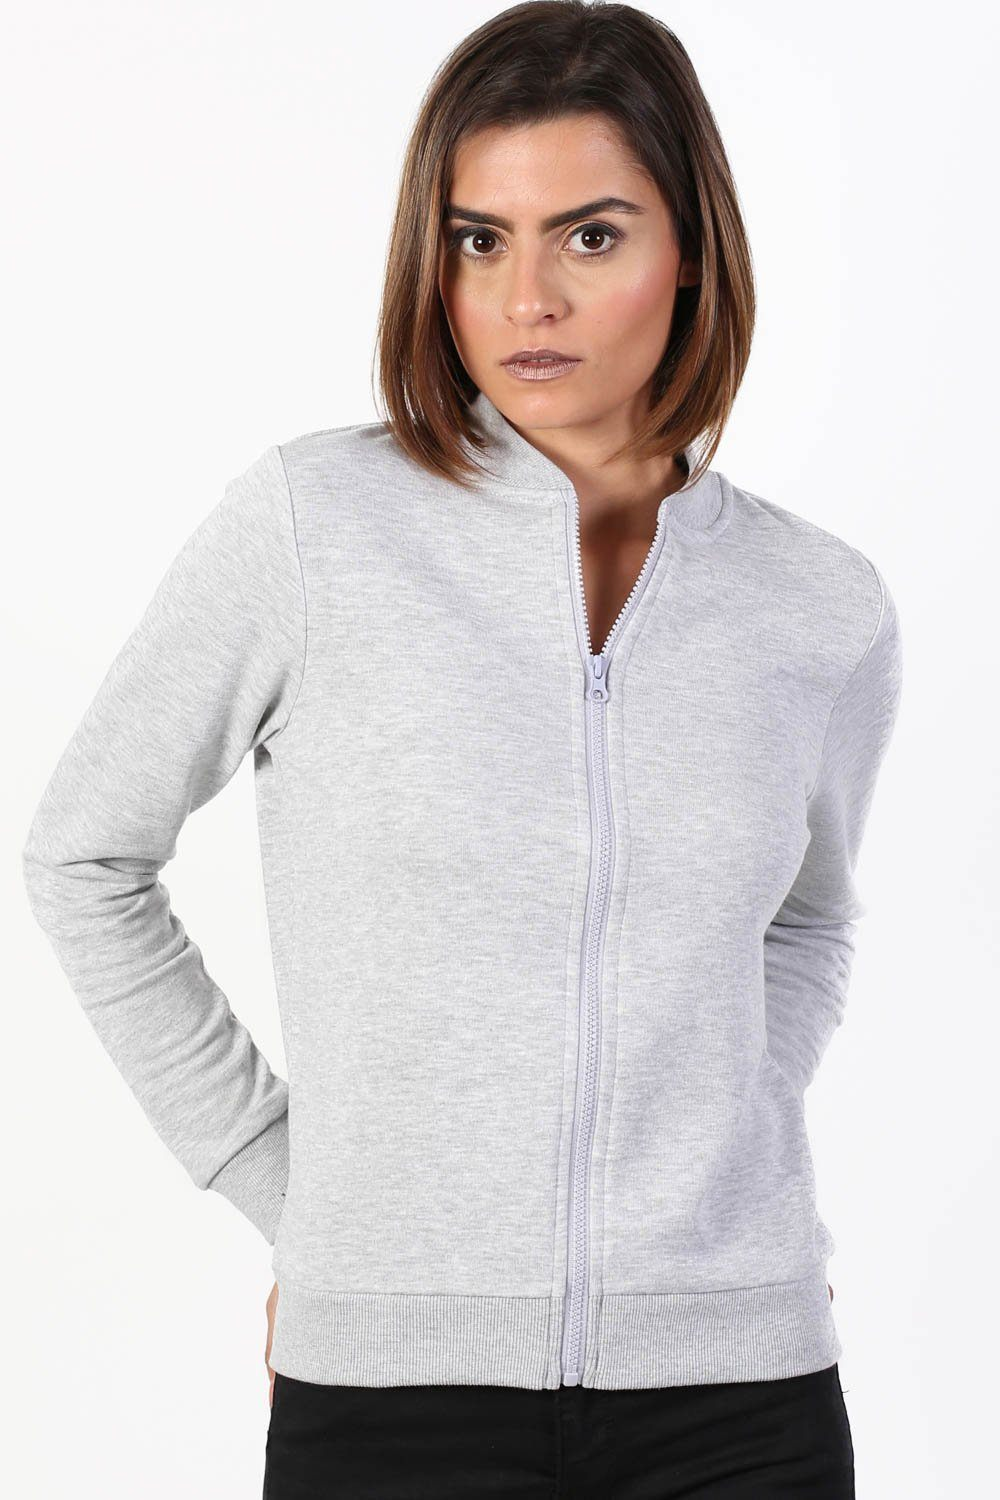 Plain Zip Front Long Sleeve Jogger Top in Grey 0